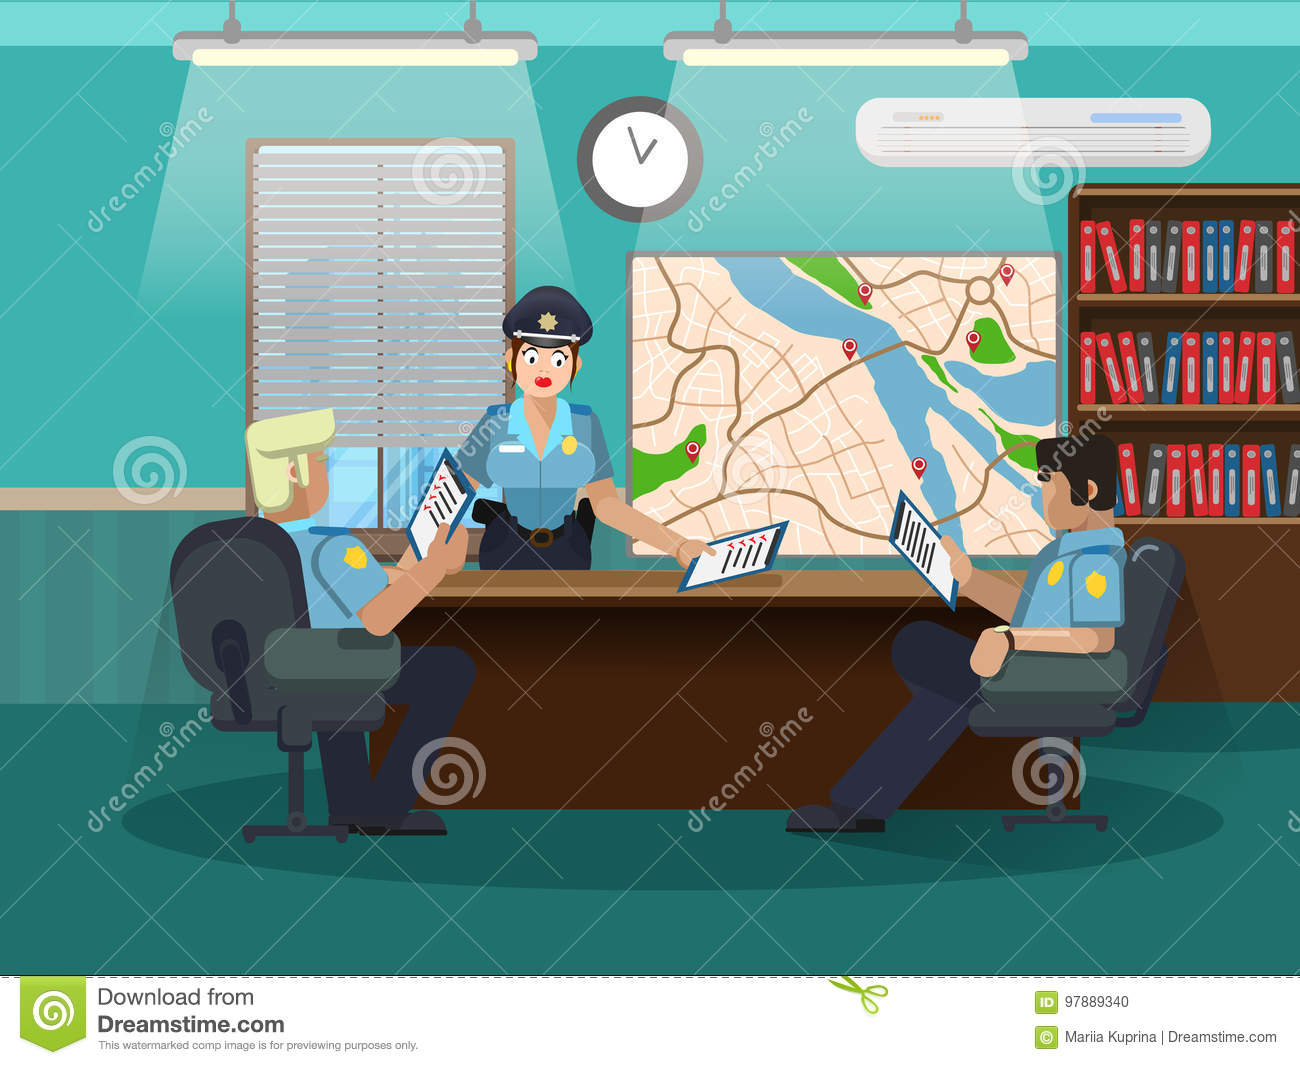 Department of internal investigations. Develop an action plan. Three policemen in the office at the table.